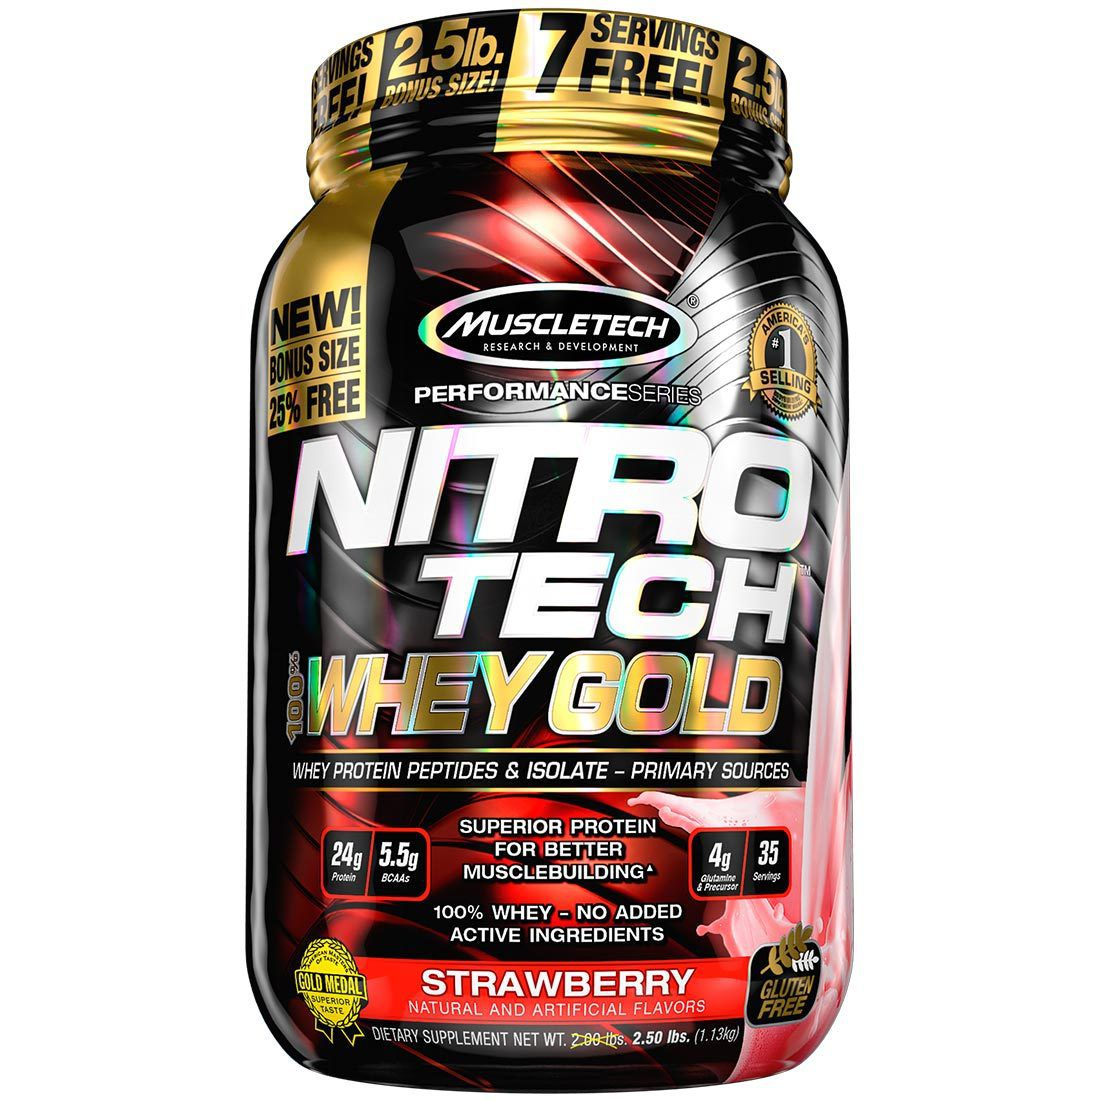 Nitro Tech Whey Gold MuscleTech - 1.13kg